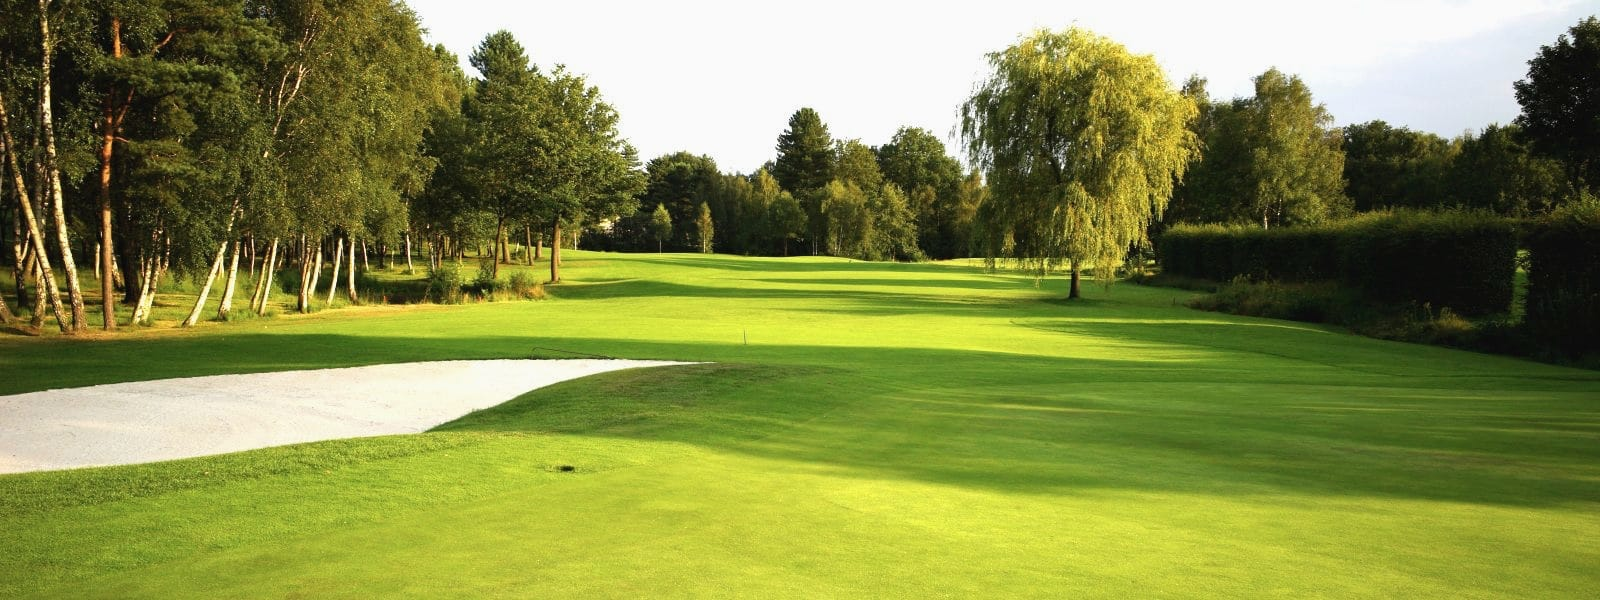 Brasschaat Open Golf